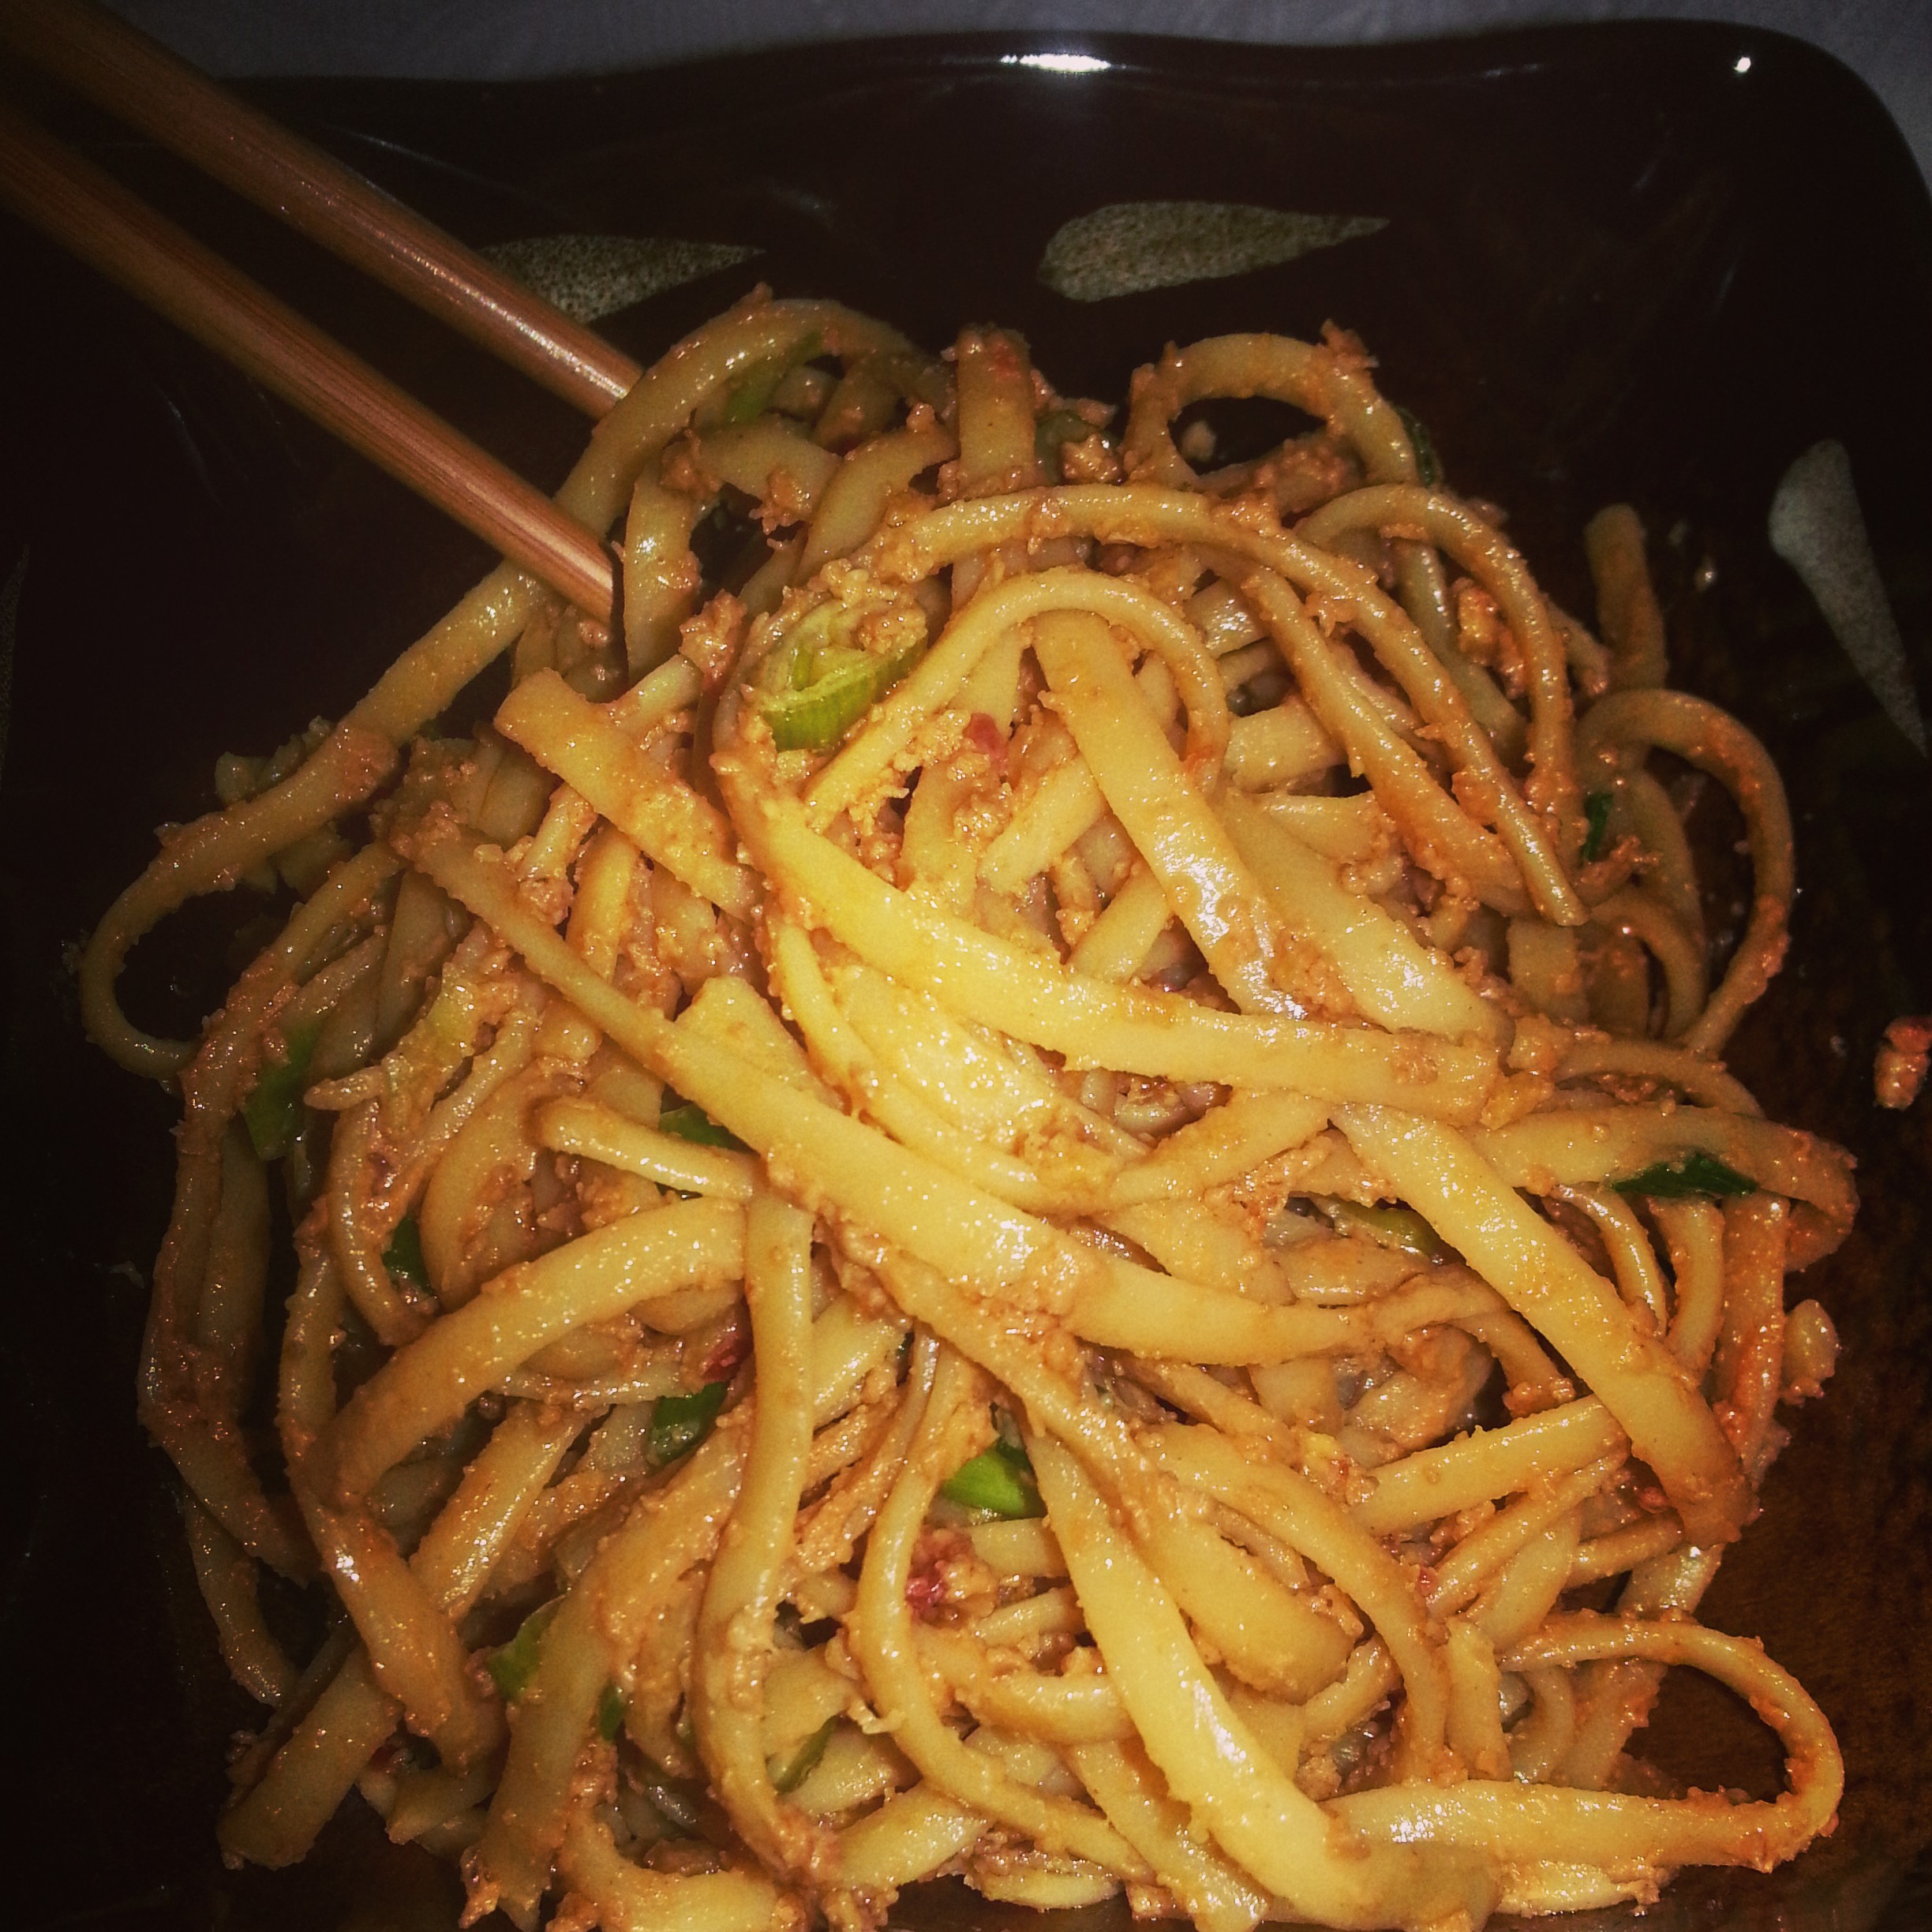 Spicy Chinese Peanut Noodles - MuffinsandMeat